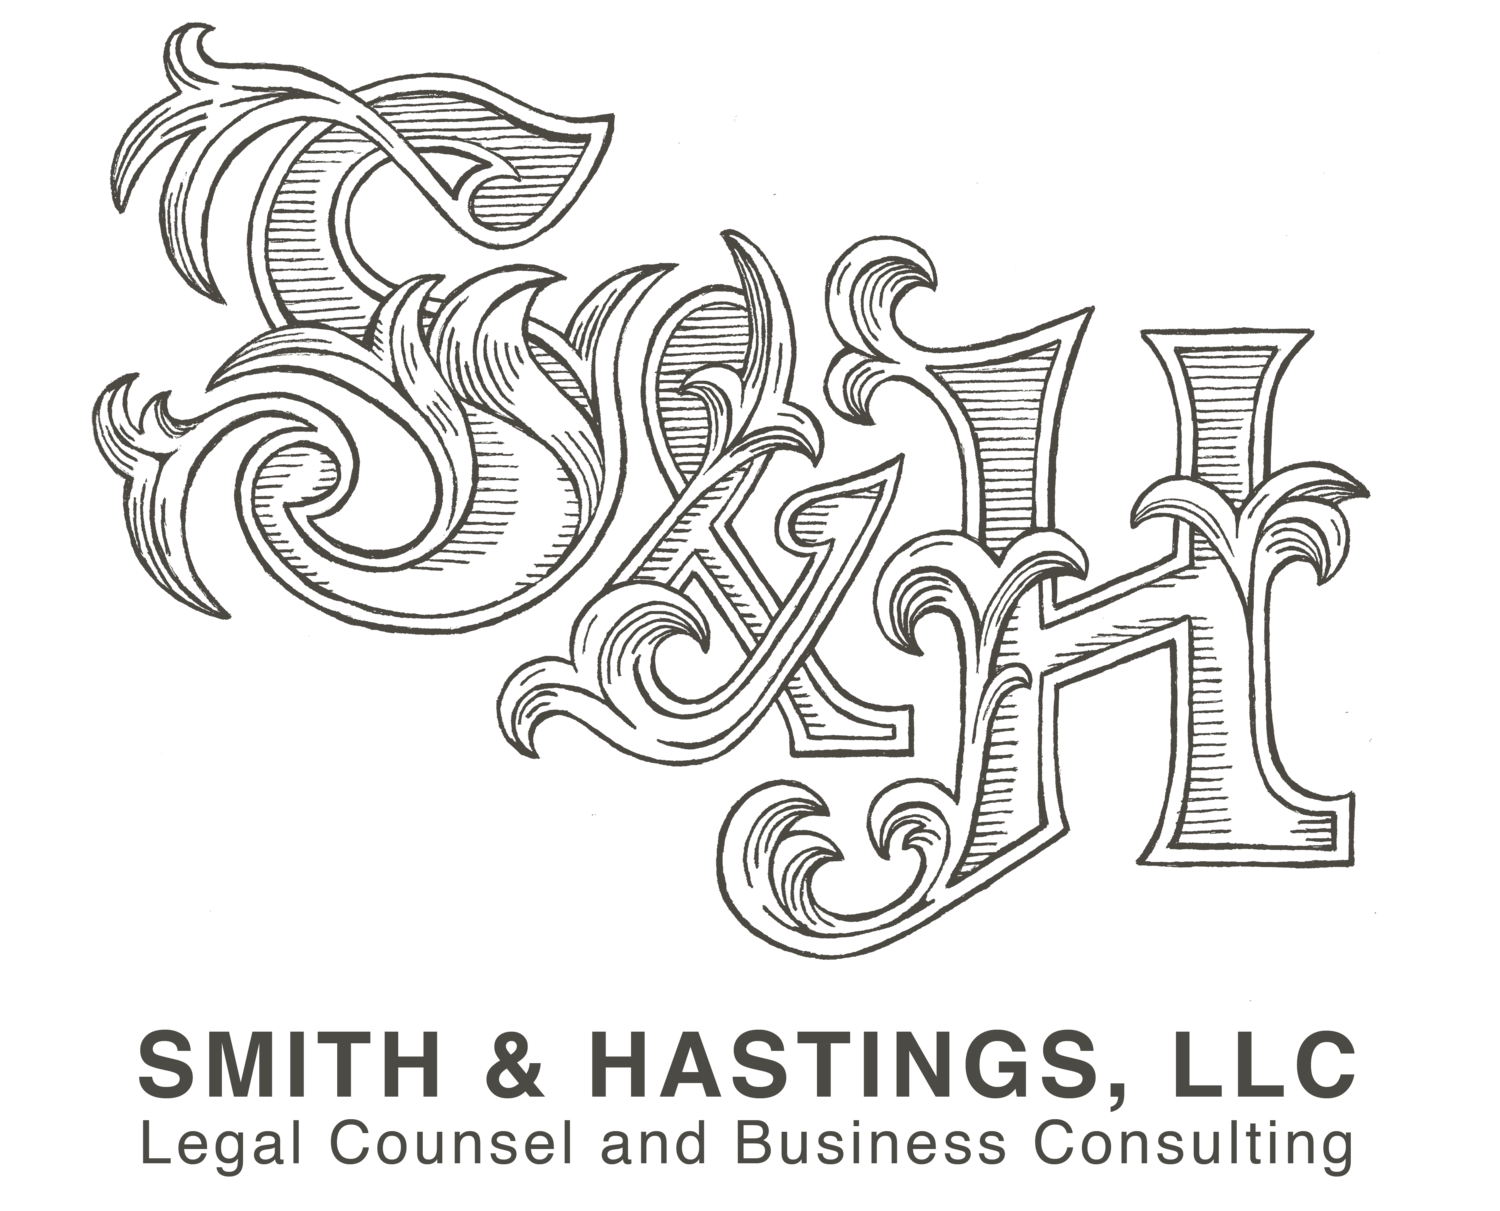 Smith & Hastings, LLC